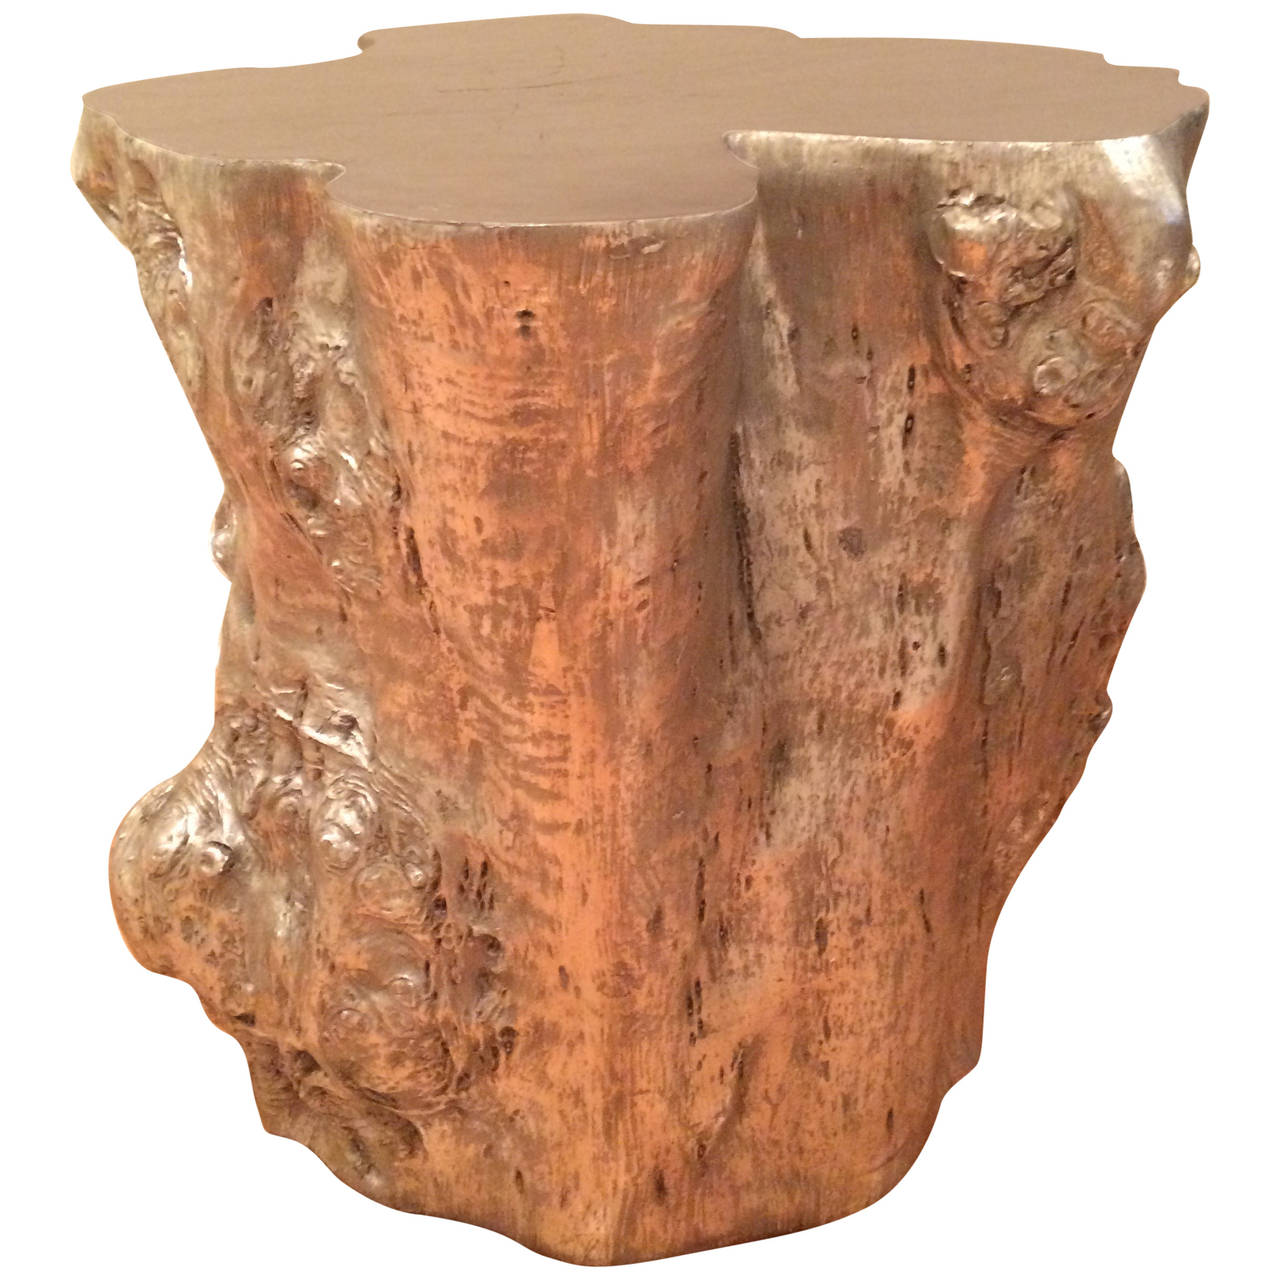 Tree stump side table - Contemporary Silvered Resin Tree Trunk Form Side Table 1